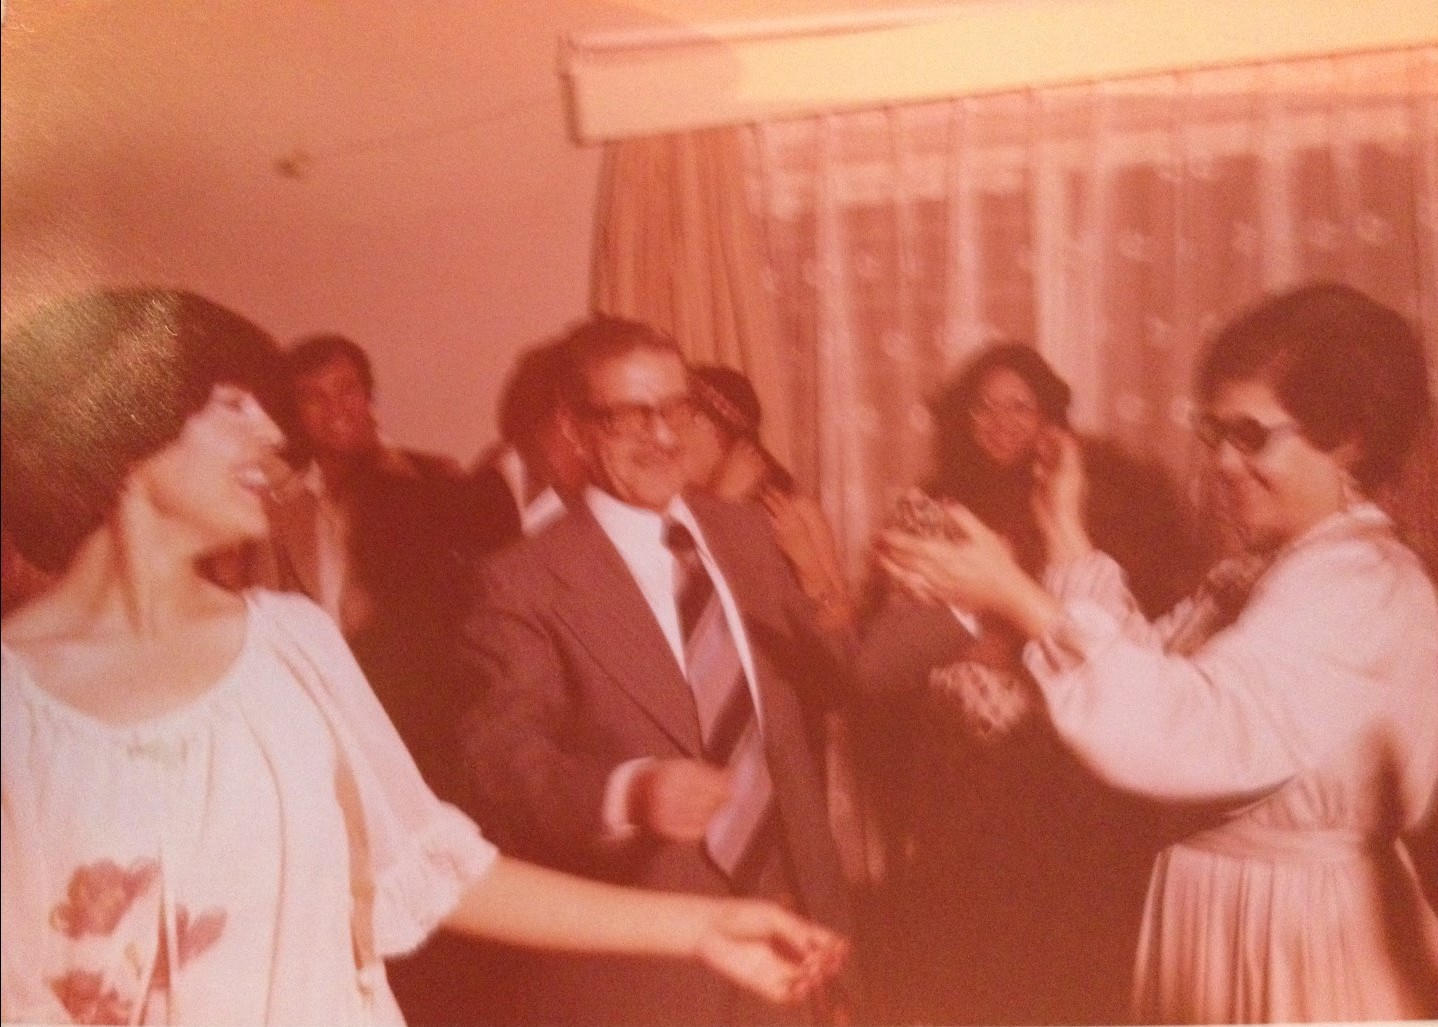 An image of grandparents dancing at a wedding in Baghdad in 1978 as submitted to the Iraq Photo Archive.